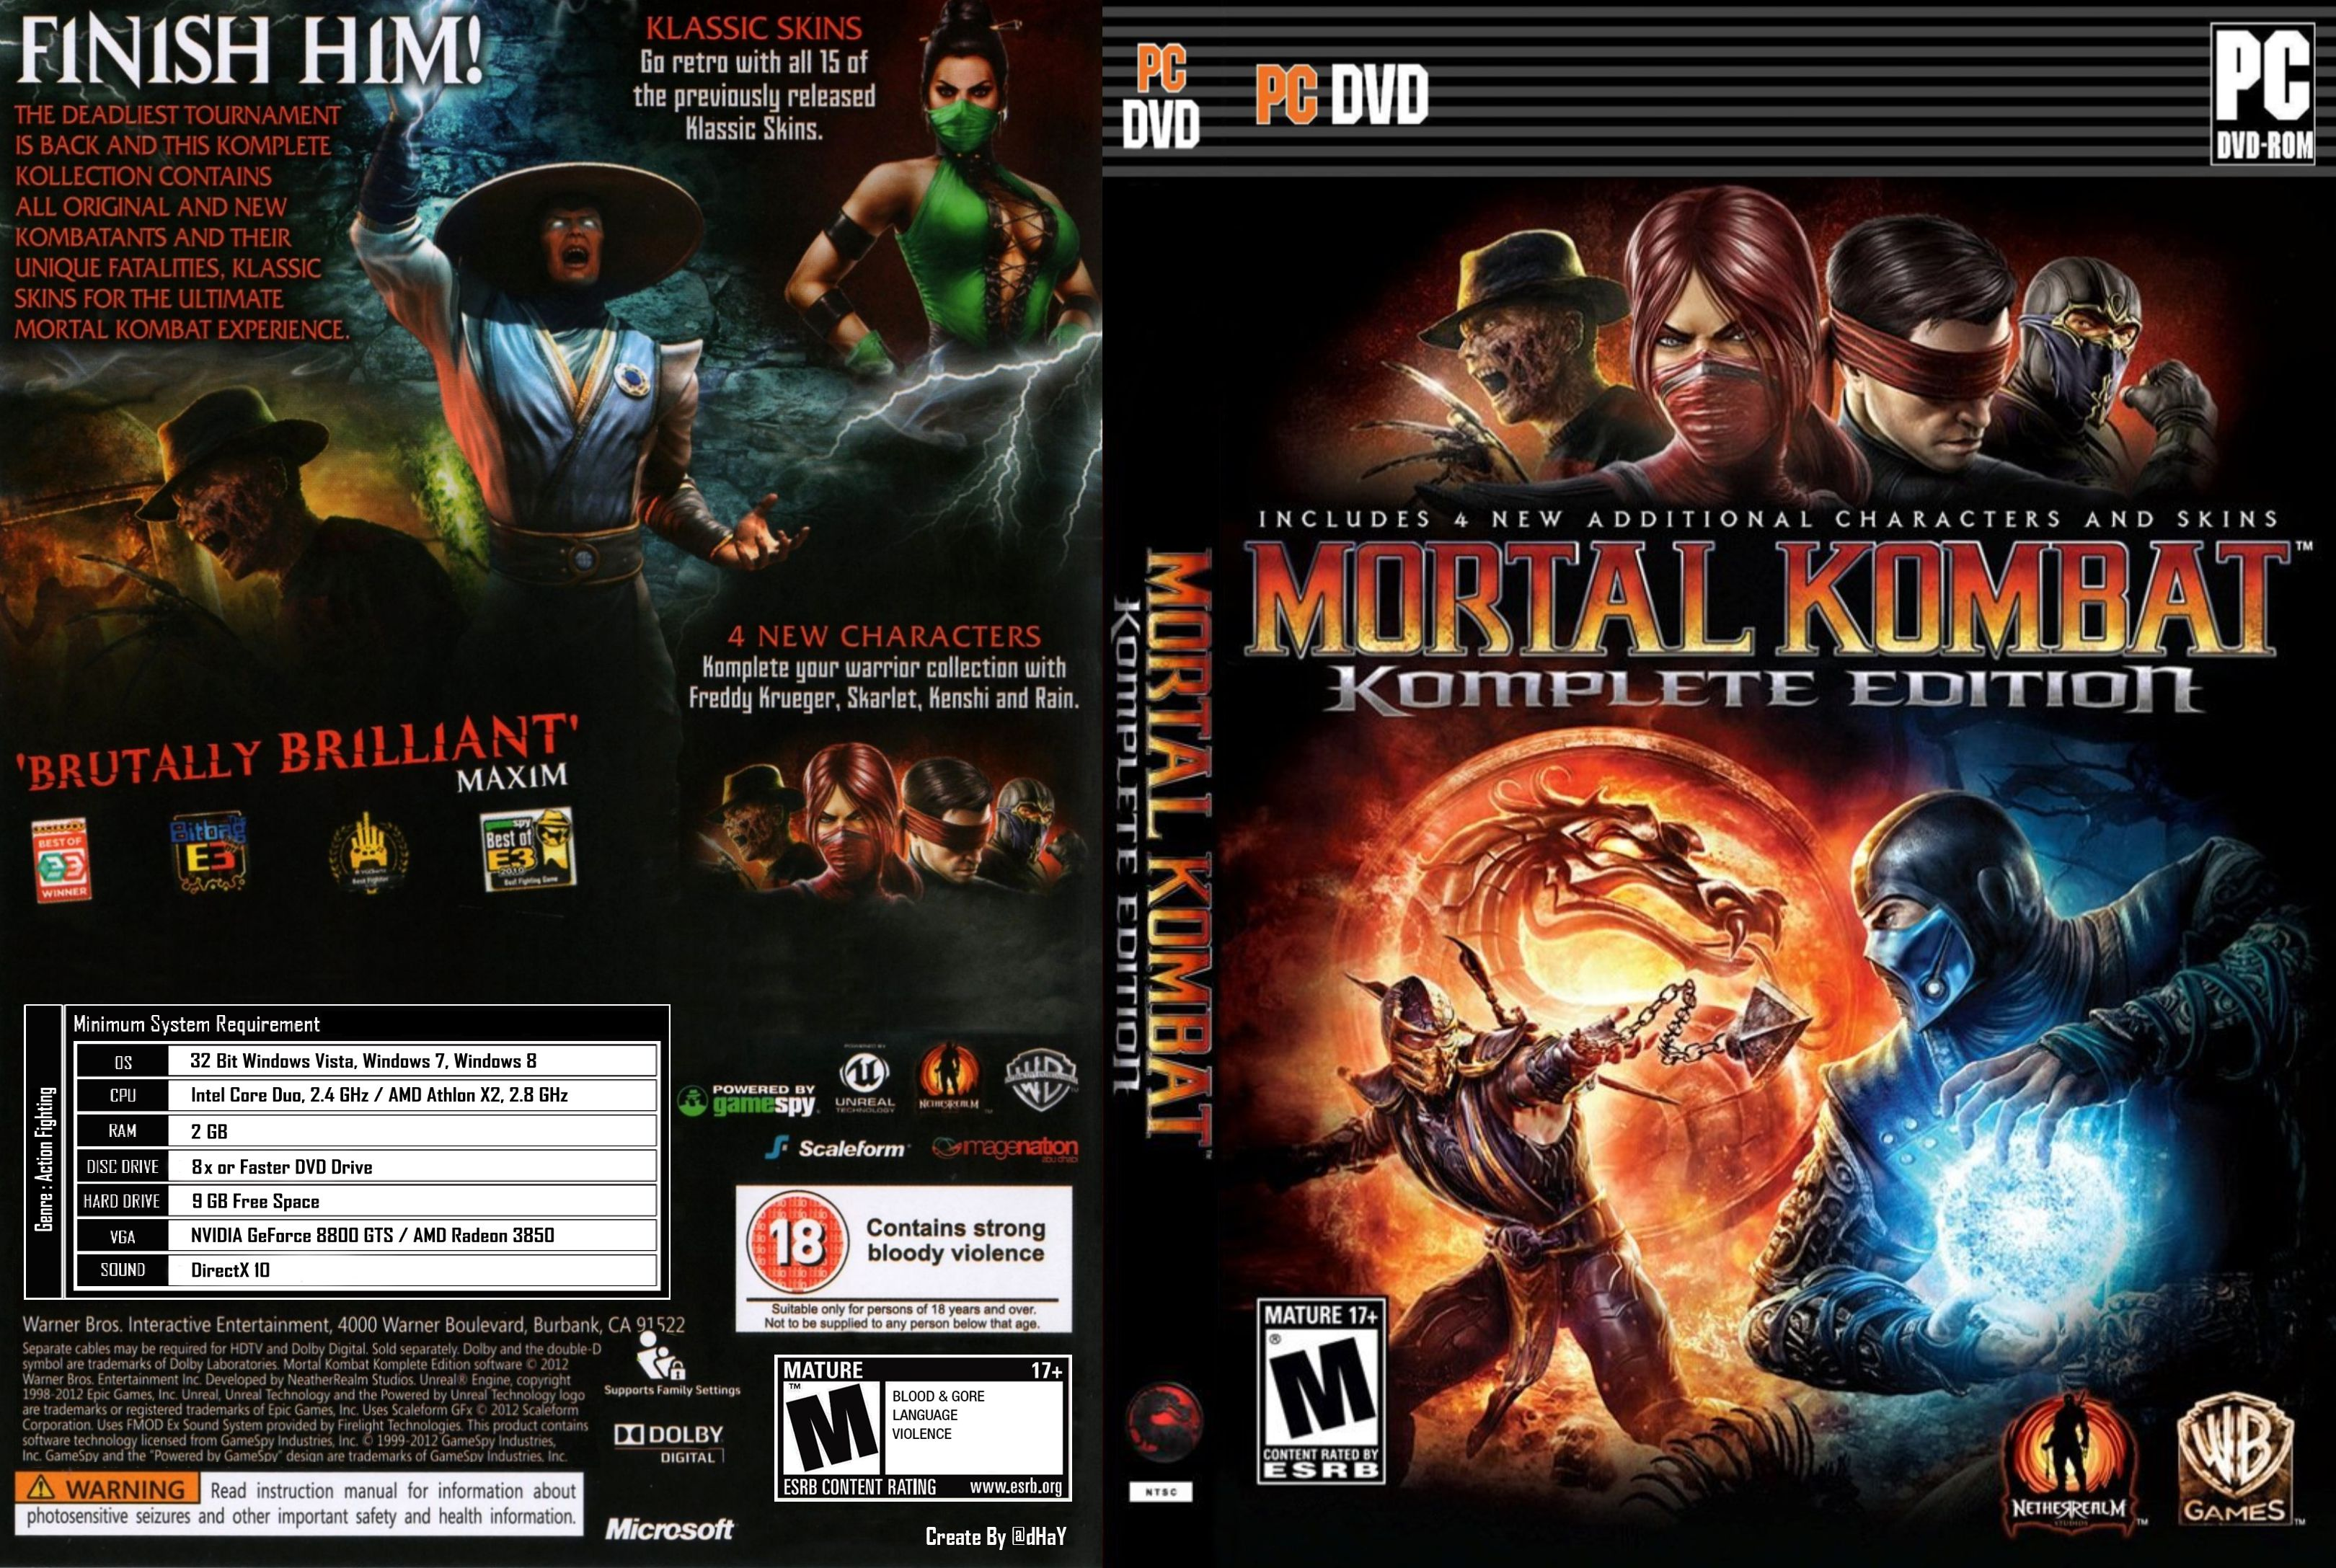 Mortal kombat komplete edition pc patch exploited film